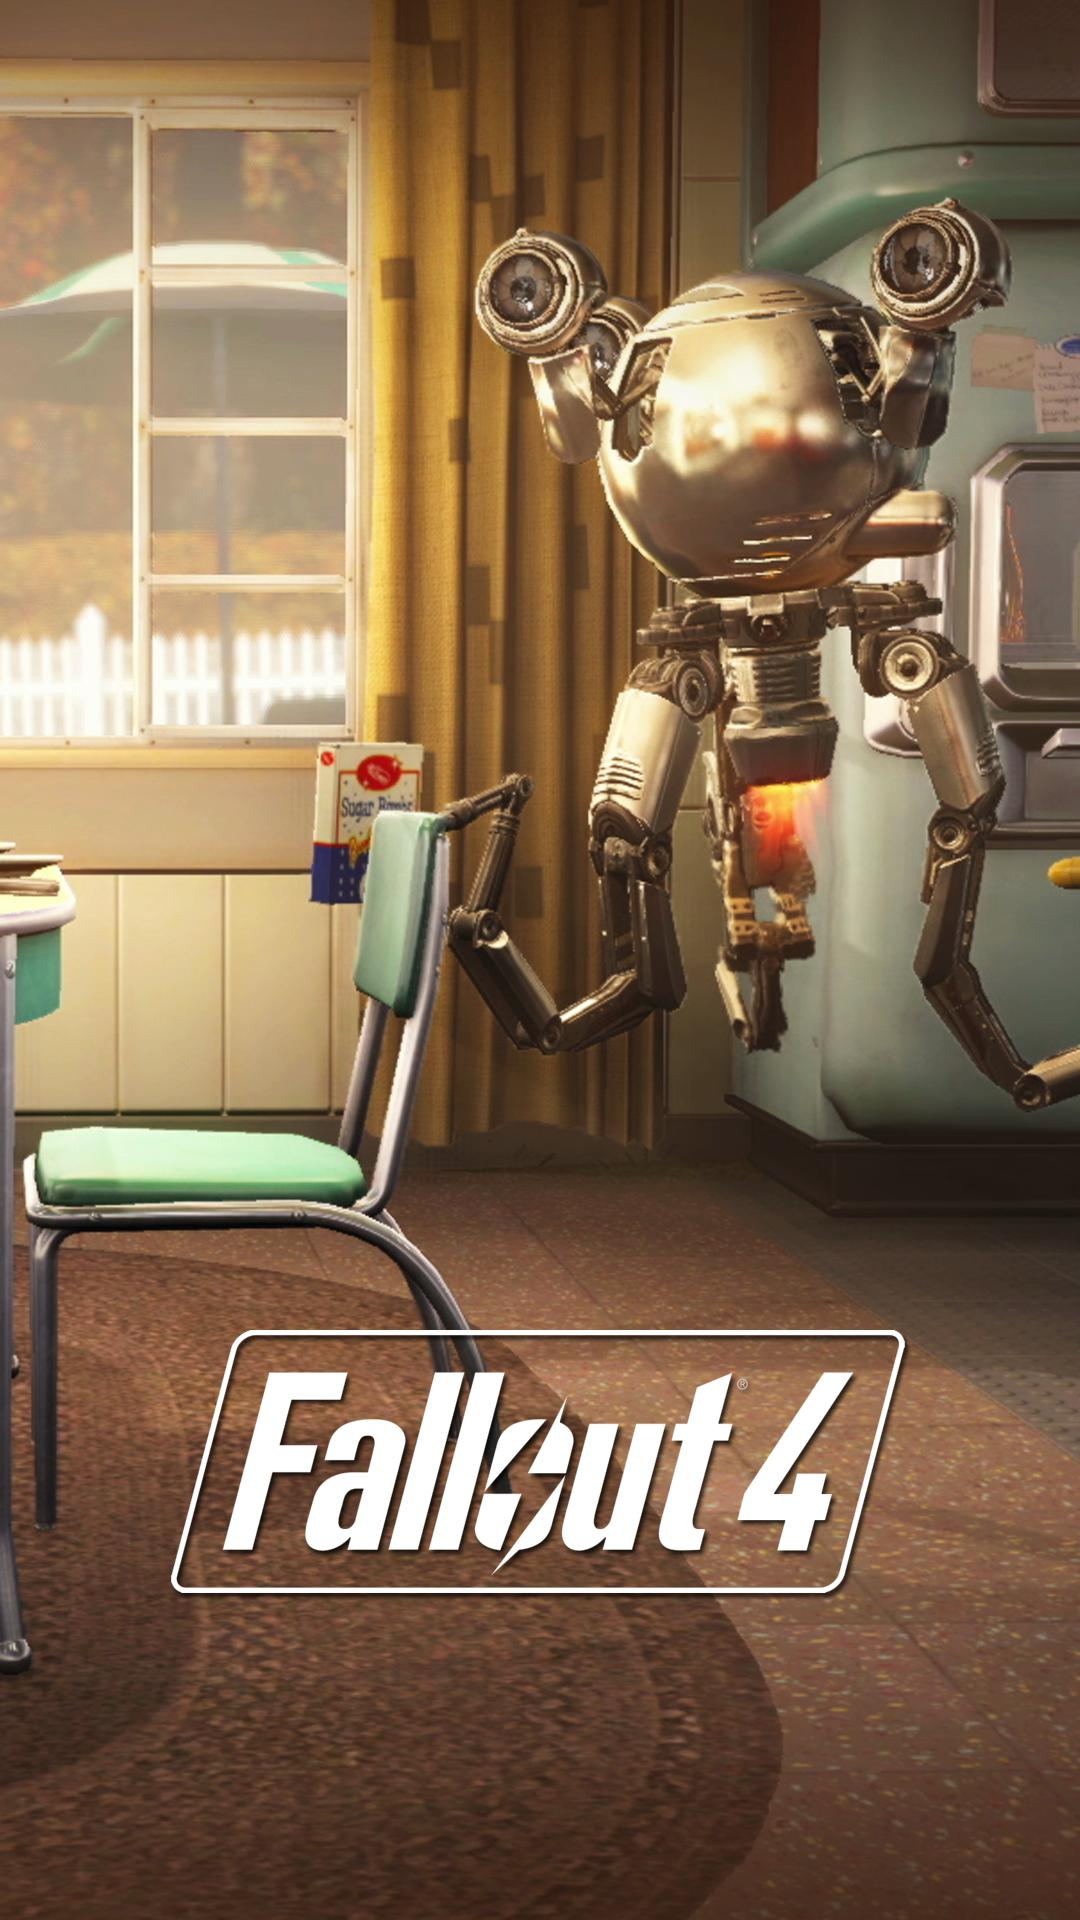 Radio Wallpaper Hd 18 Fallout 4 Wallpapers For Mobile Fallout 4 Fo4 Mods